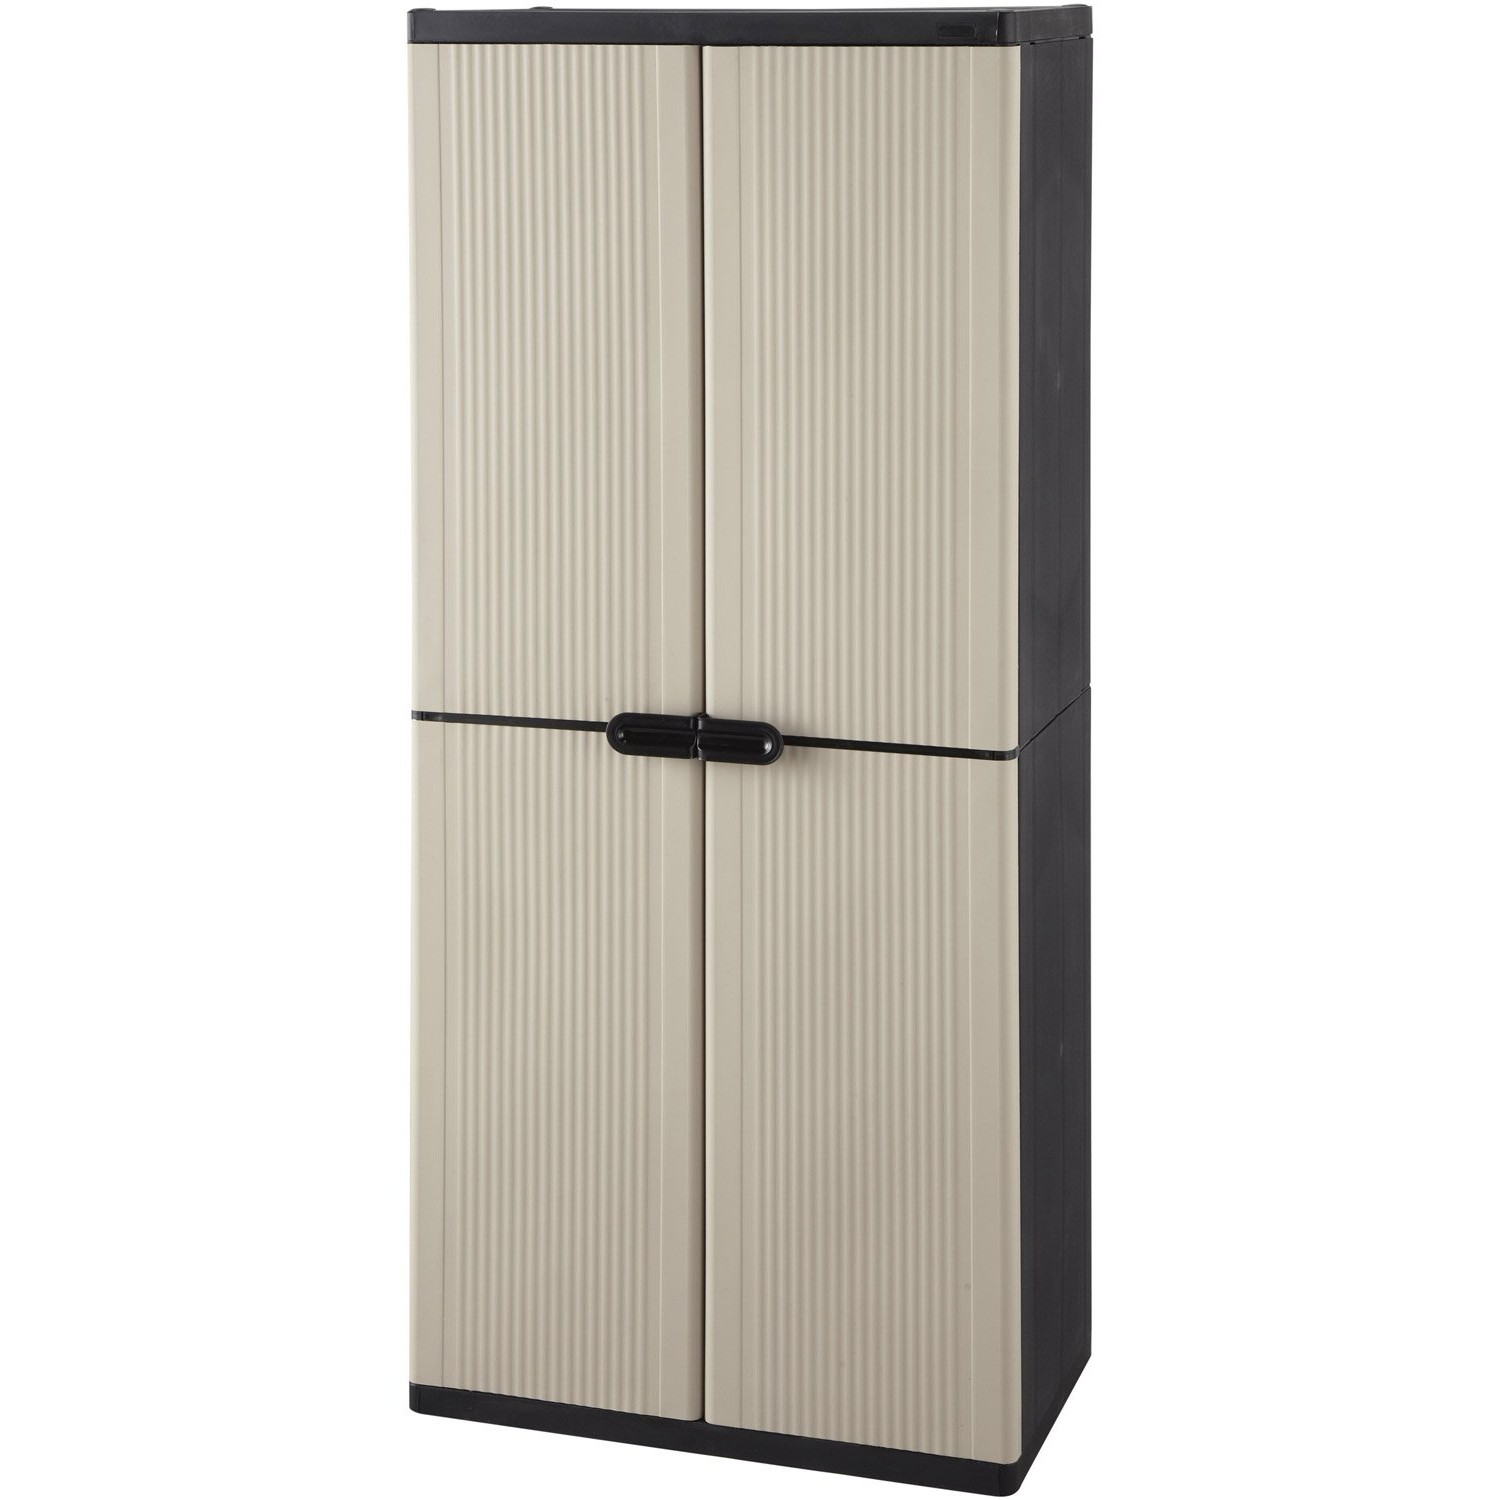 armoire de rangement en plastique leroy merlin maison design. Black Bedroom Furniture Sets. Home Design Ideas